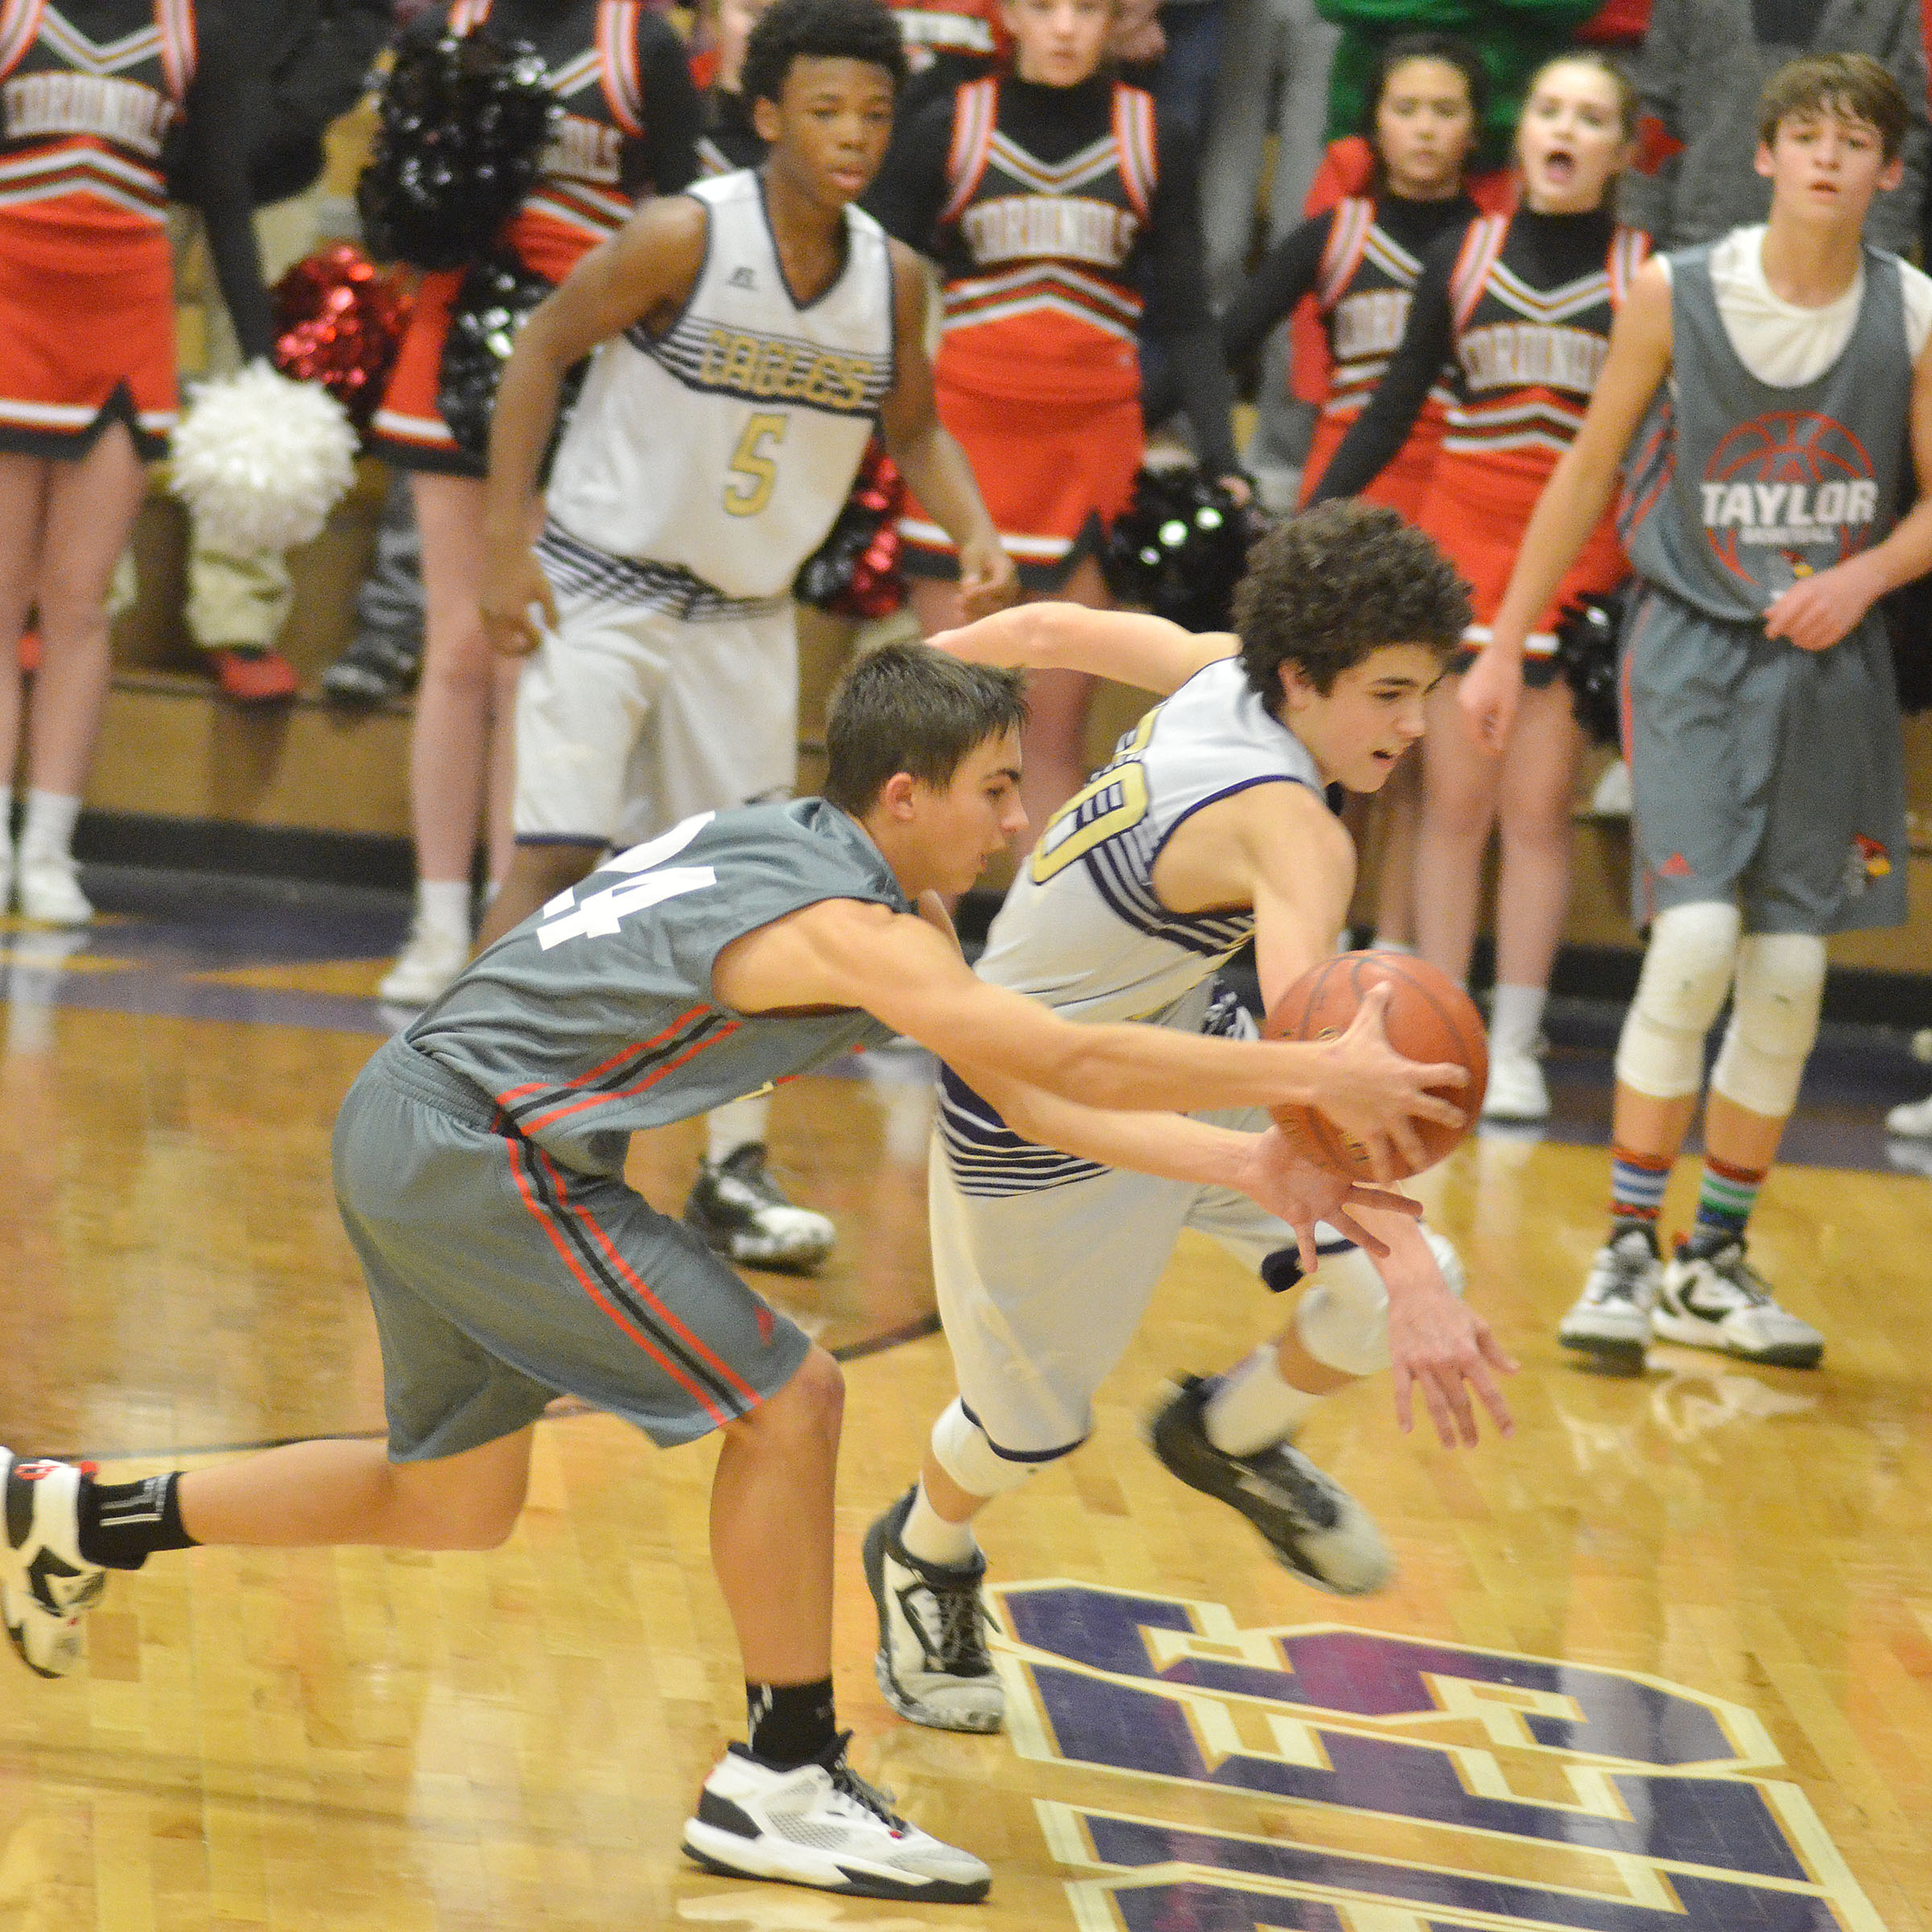 CMS eighth-grader Kameron Smith fights for the ball.